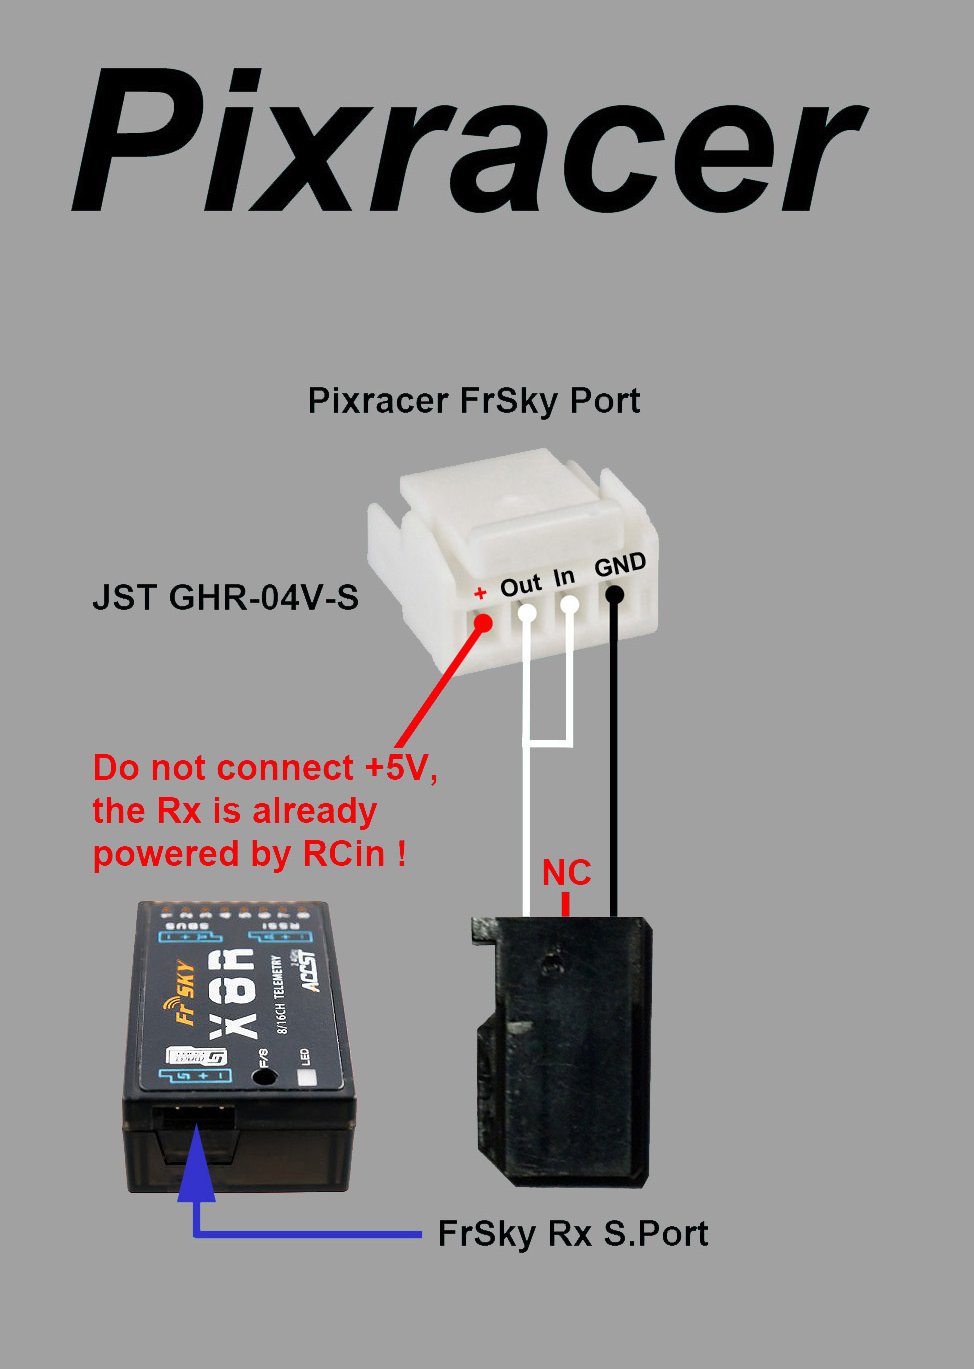 Quadcopter Robotics Frsky Cc3d Wiring Diagram Also Connect Gnd Black Wires But No Red Power Wire X8r Is Already Powered By Pixracer Through Rcin Connector